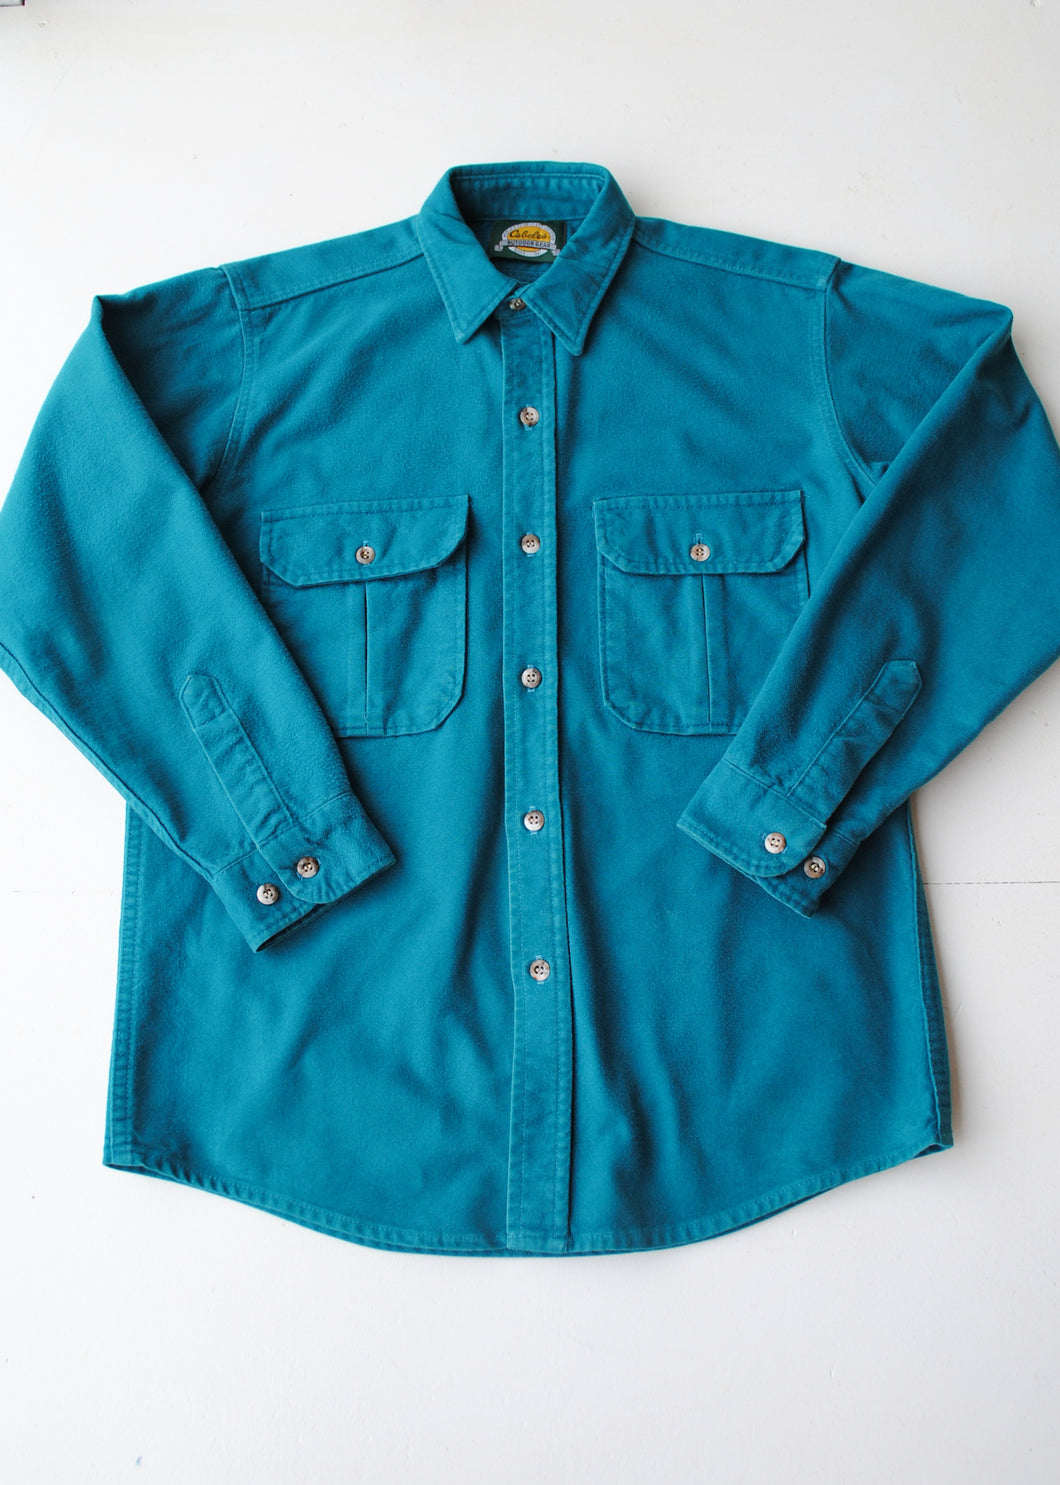 Cabelas Teal Flannel Shirt, Medium